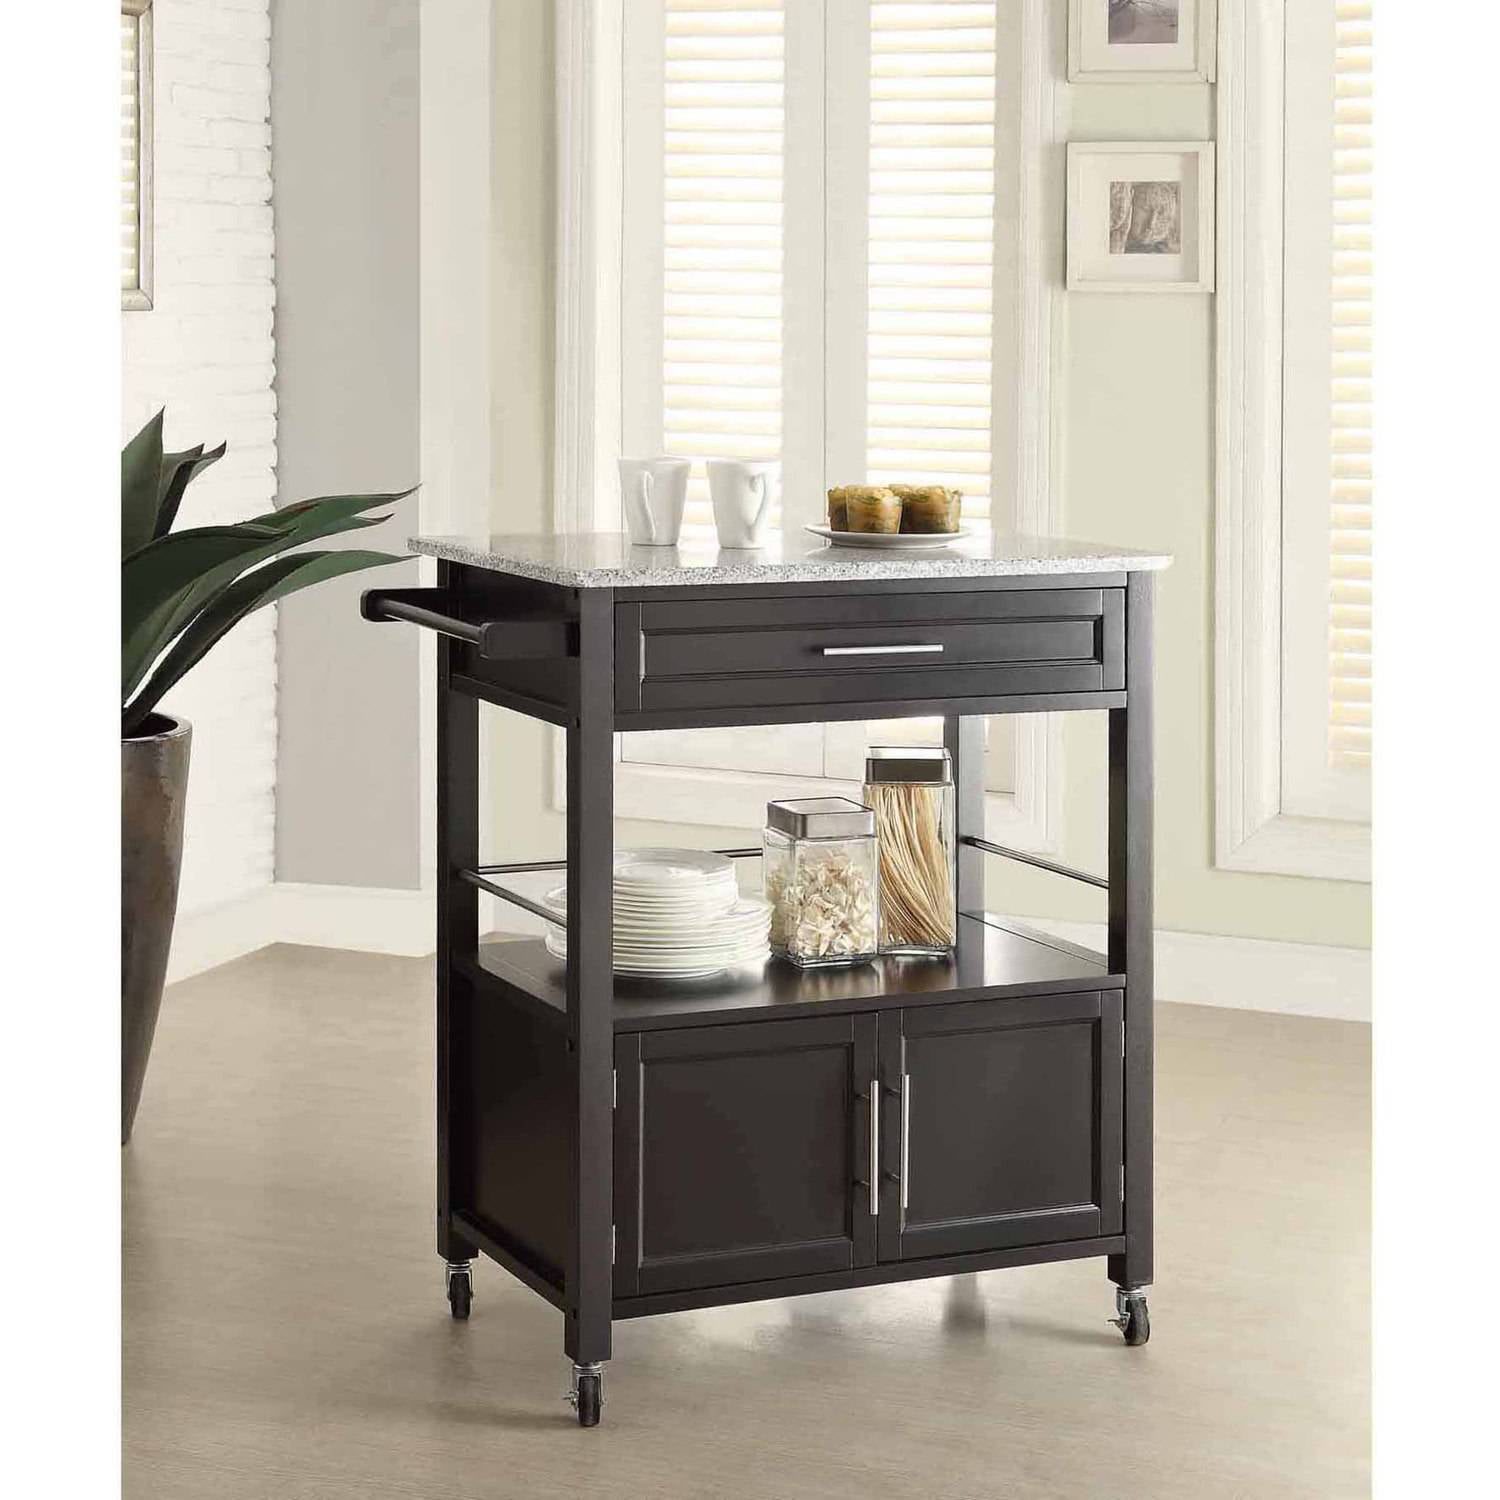 Granite Top Kitchen Cart Cameron Kitchen Cart With Granite Top Black Finish Walmartcom